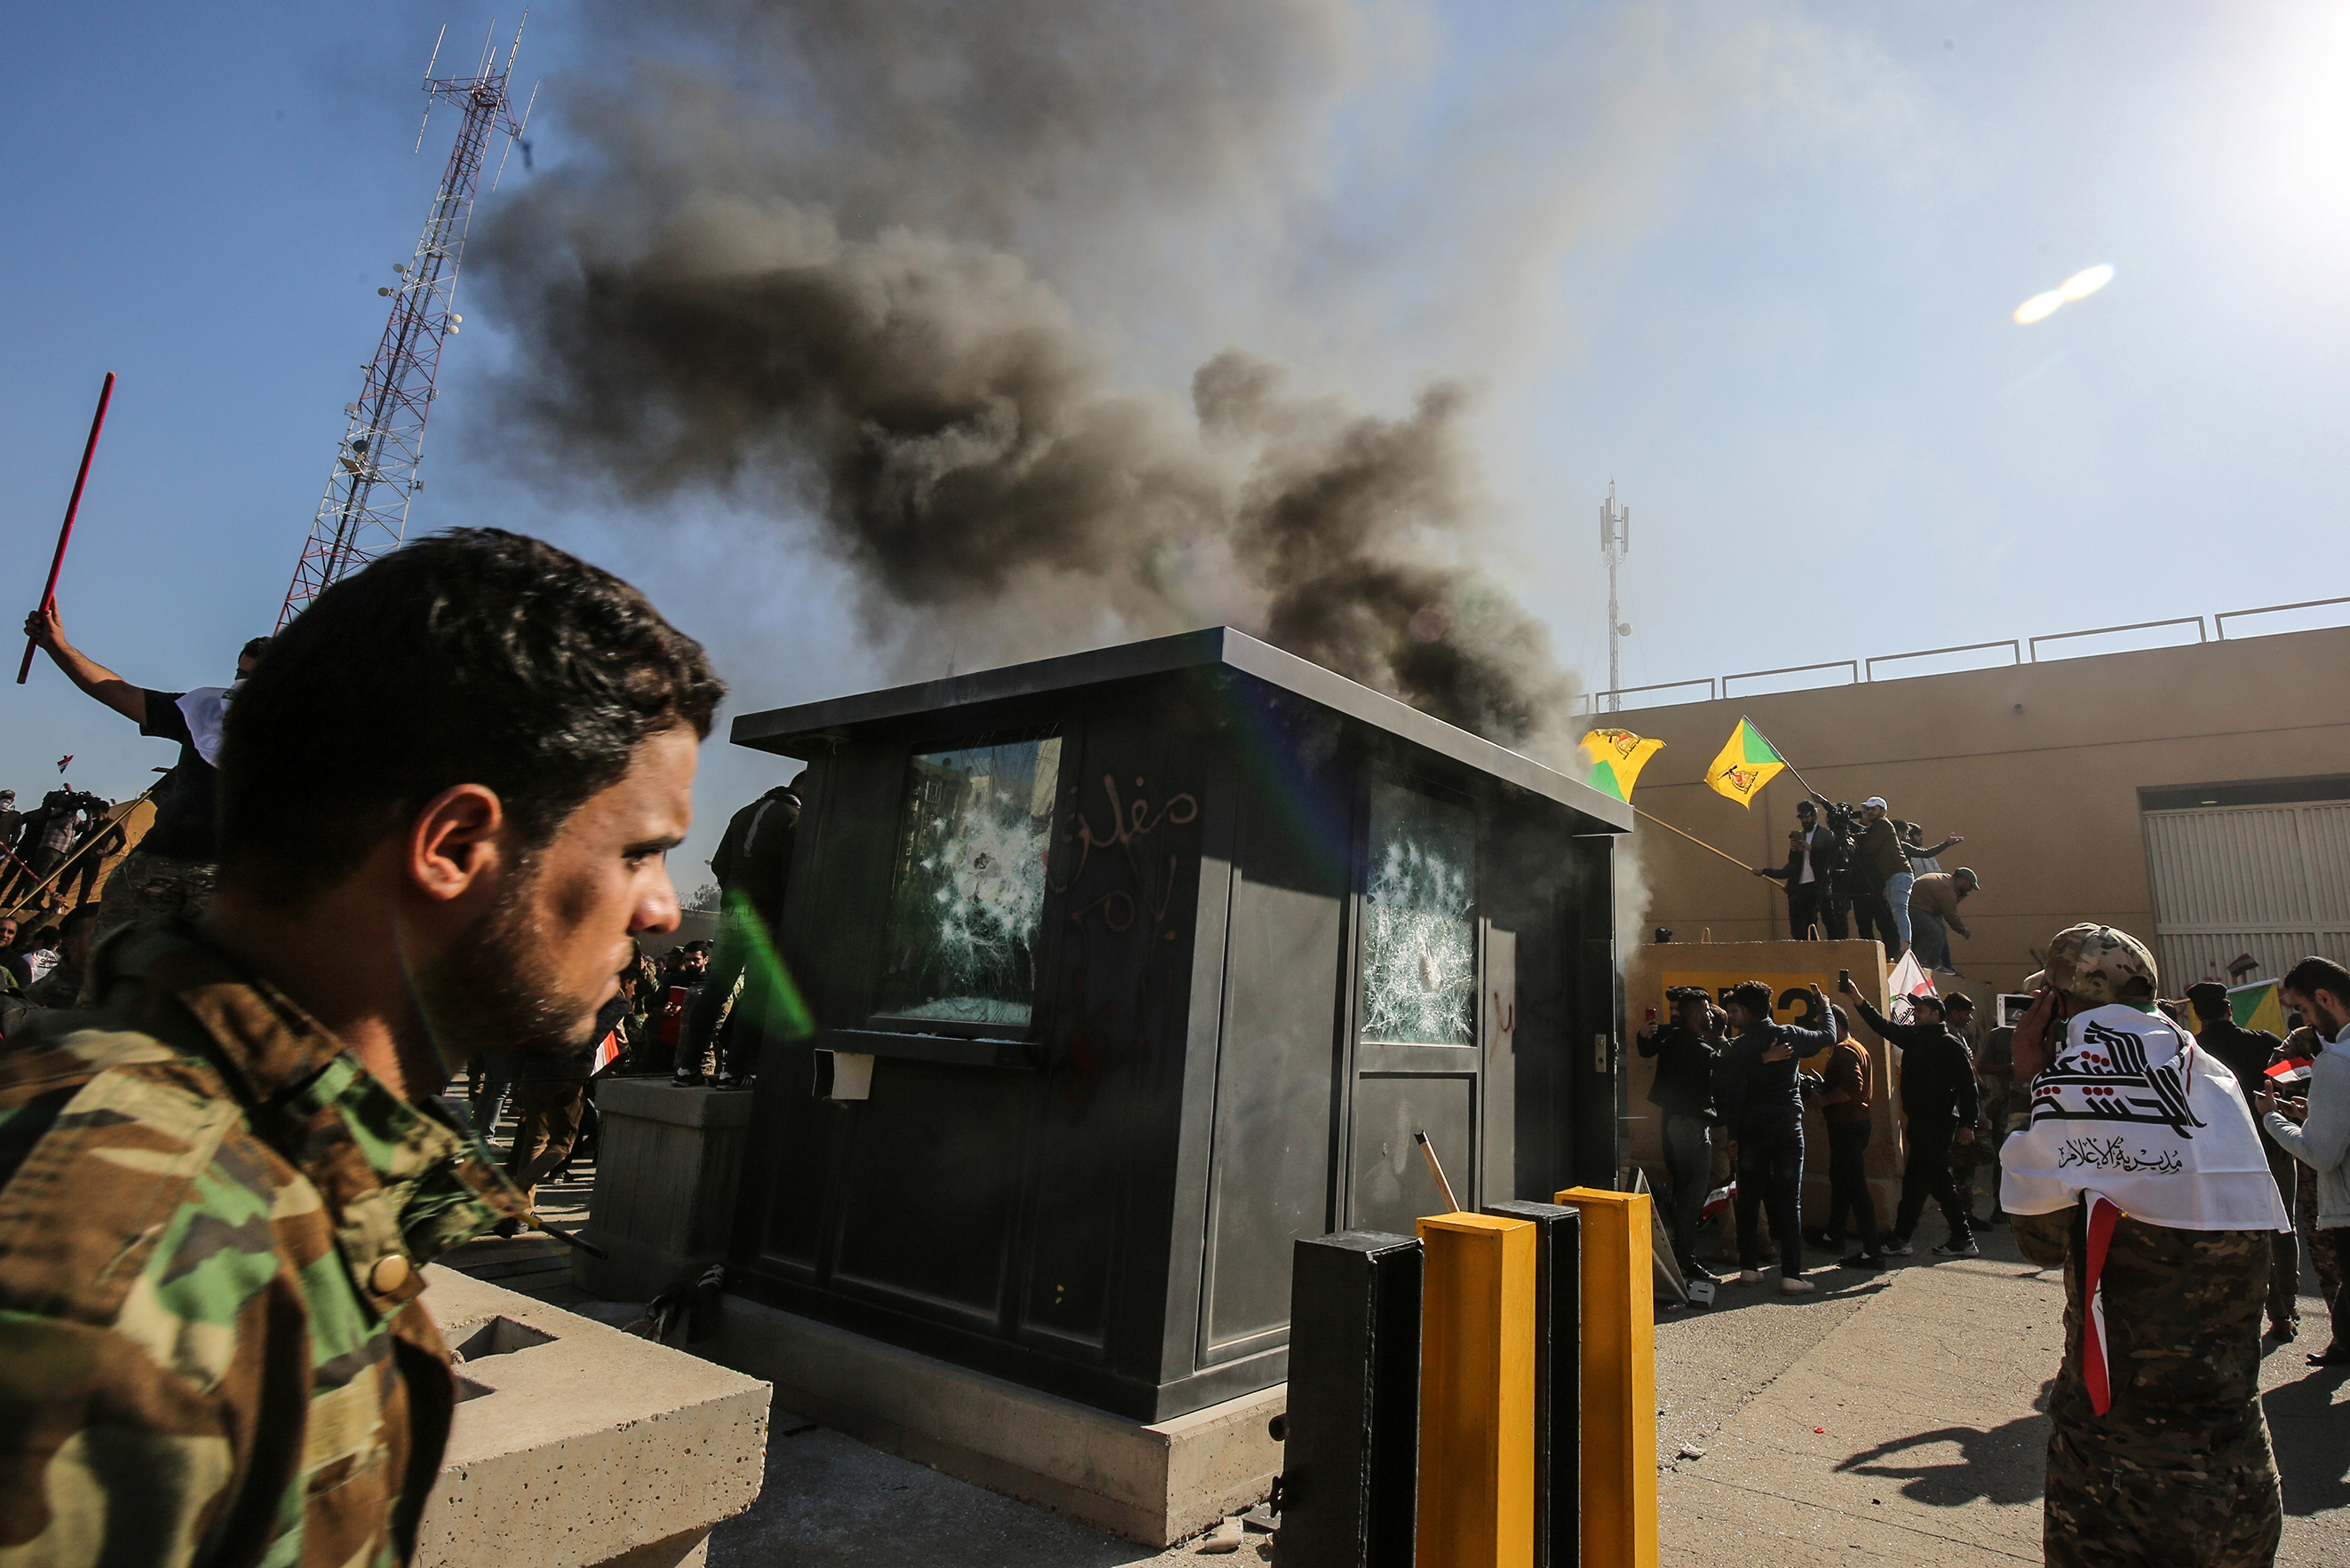 Members of the Iraqi pro-Iranian Hashed al-Shaabi group and protesters set ablaze a sentry box in front of the US embassy building in the capital Baghdad to protest against the weekend's air strikes. (AHMAD AL-RUBAYE/AFP via Getty Images)